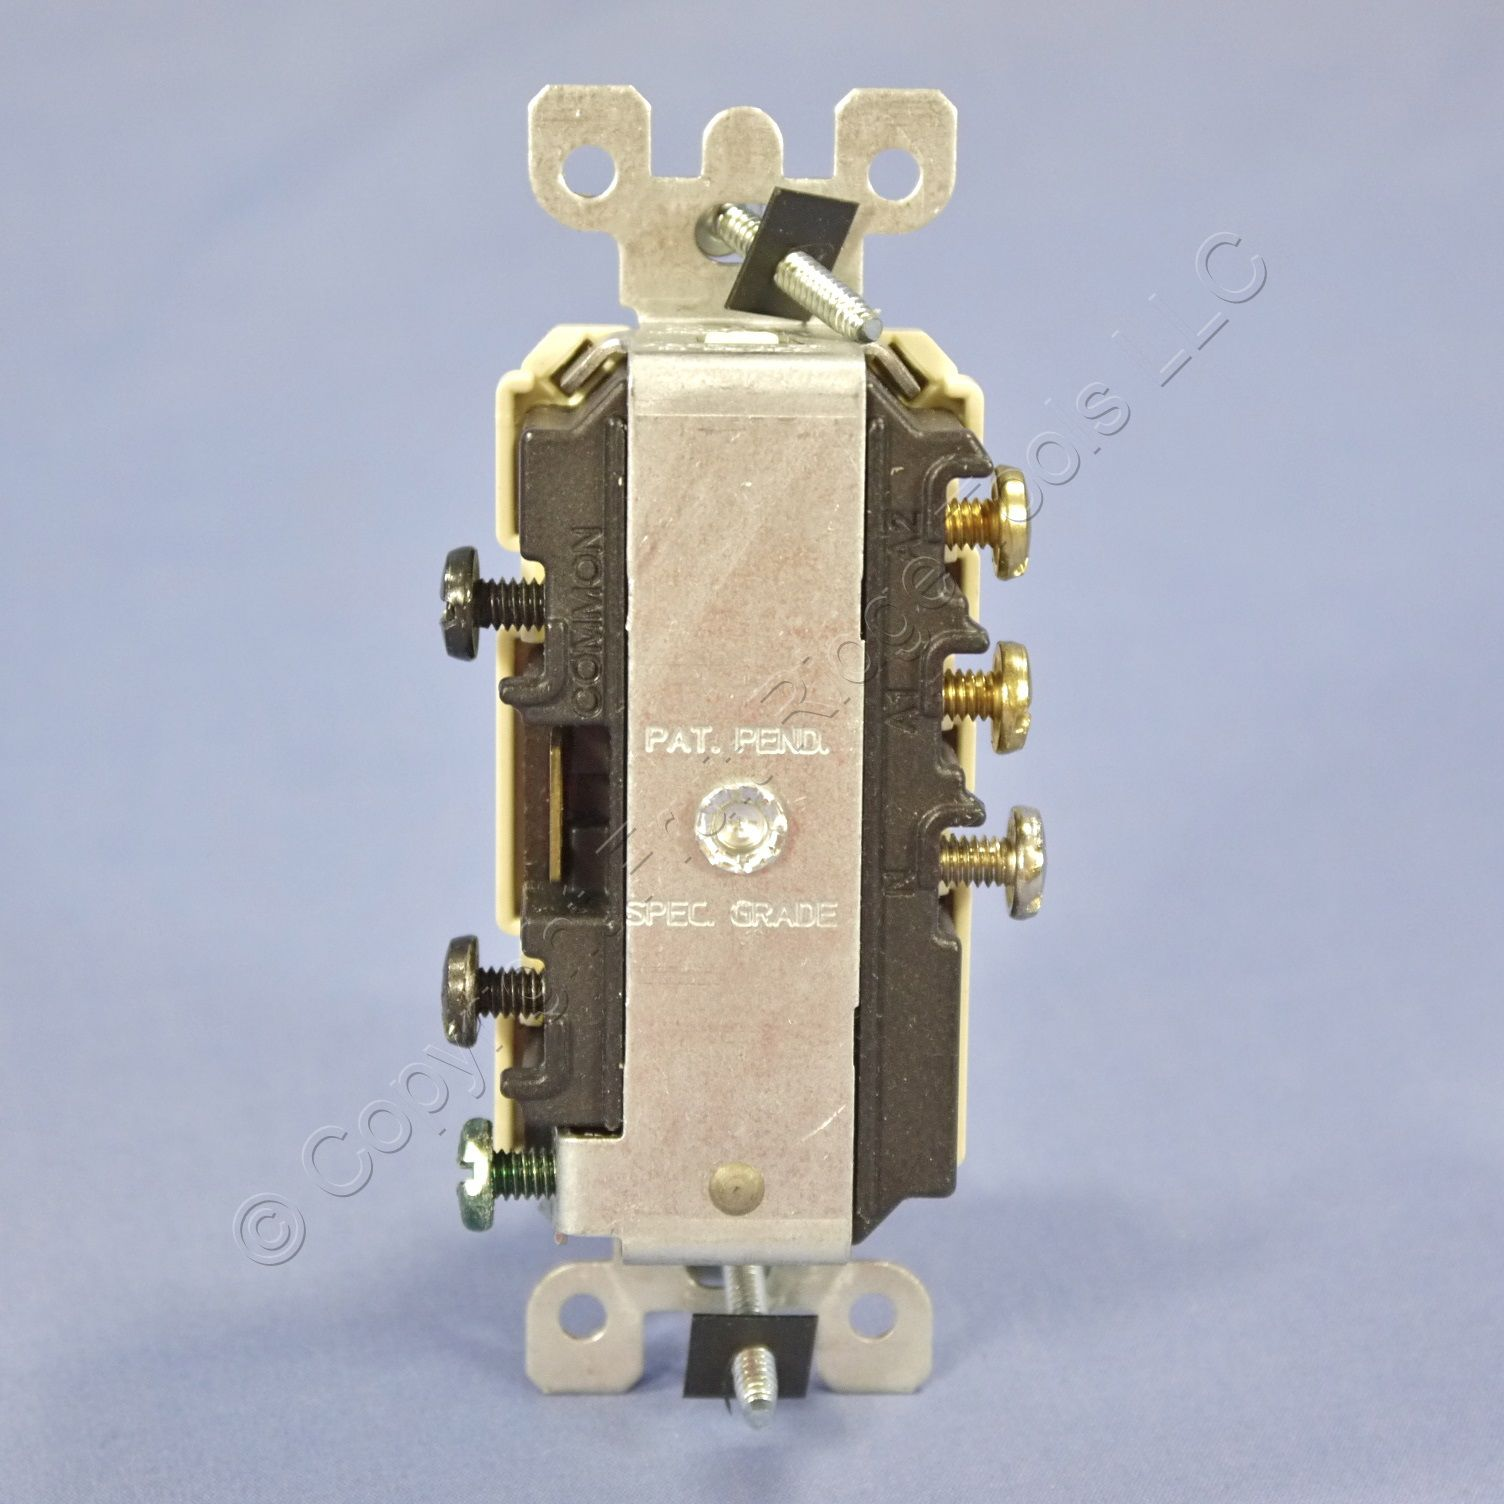 3 way outlet 1972 cb450 wiring diagram leviton ivory combination light switch